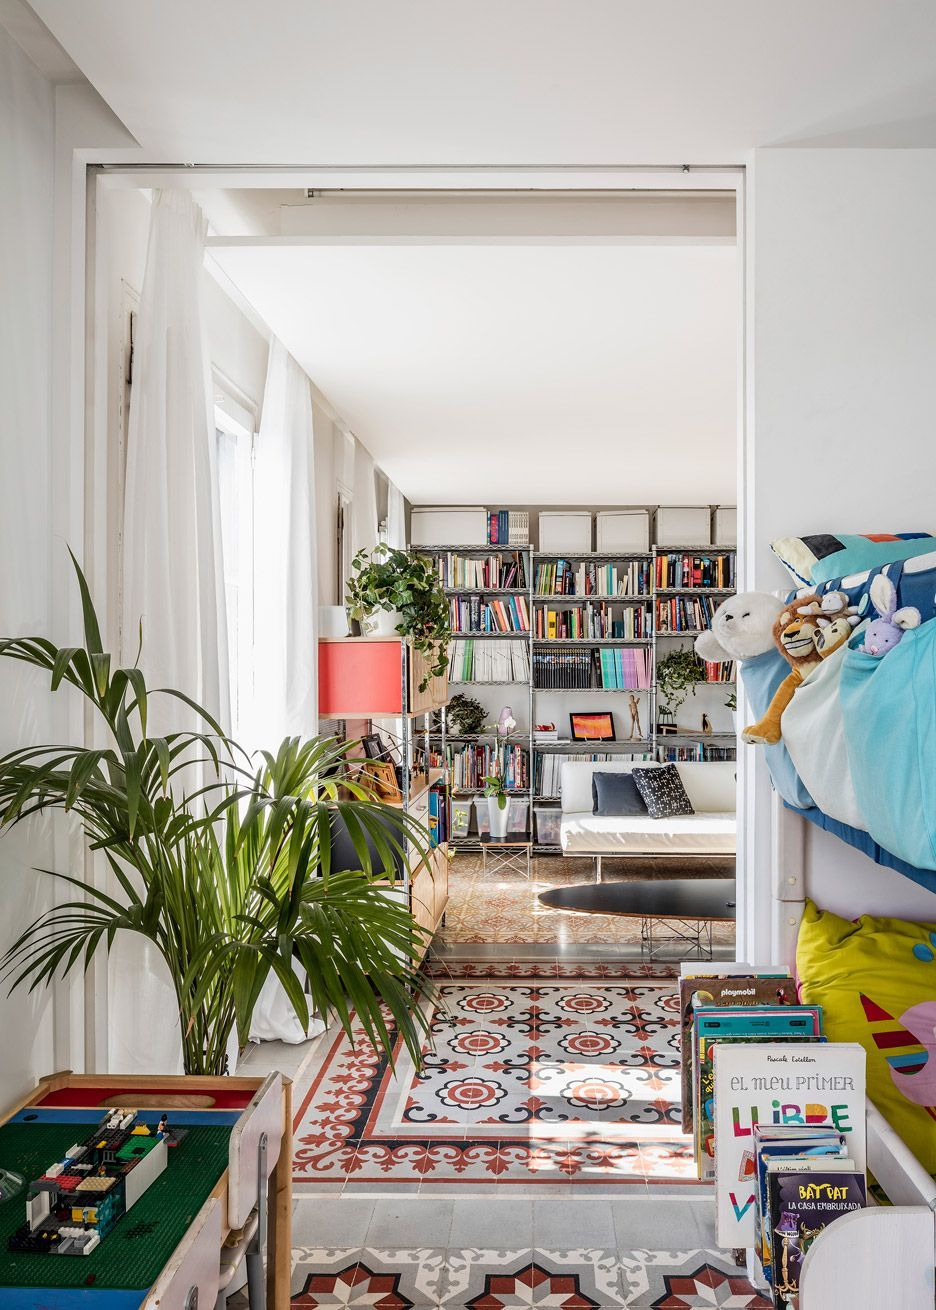 Living Room With Potted Palm Tiled Floors Bookcases And Beige Couch